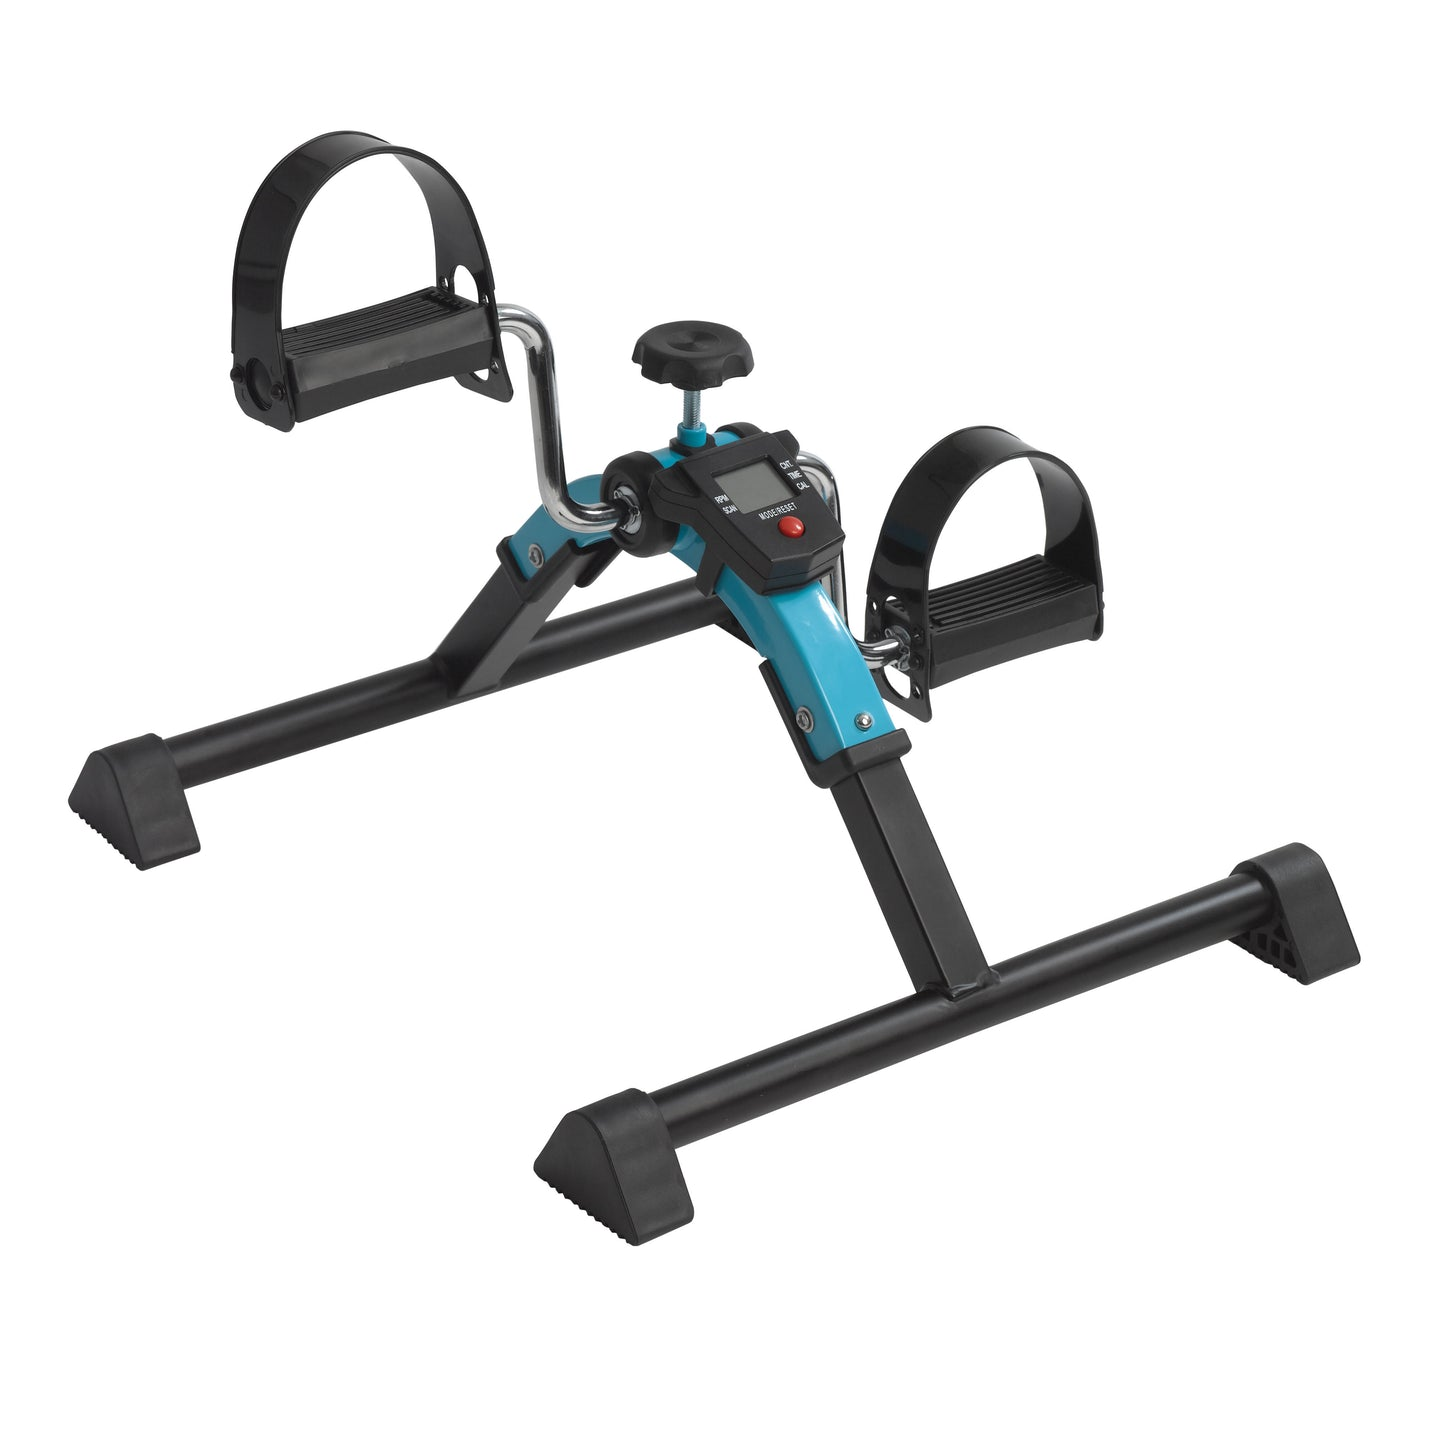 Drive Folding Exercise Peddler with Digital Display- Blue